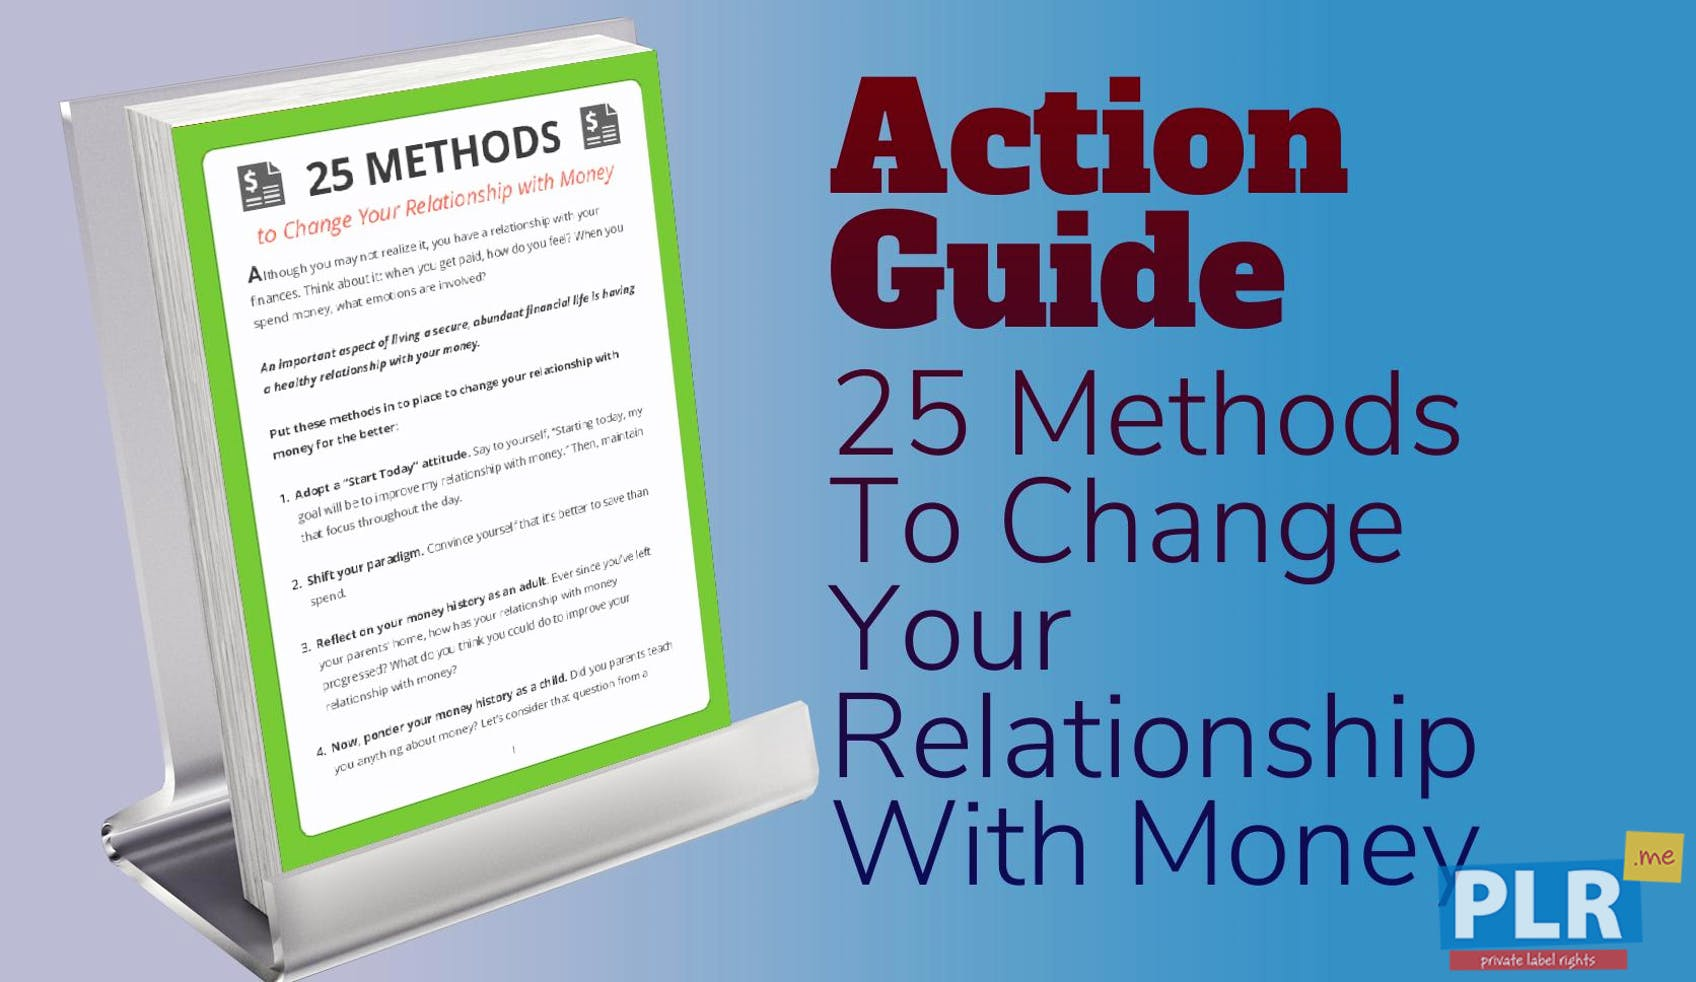 25 Methods To Change Your Relationship With Money